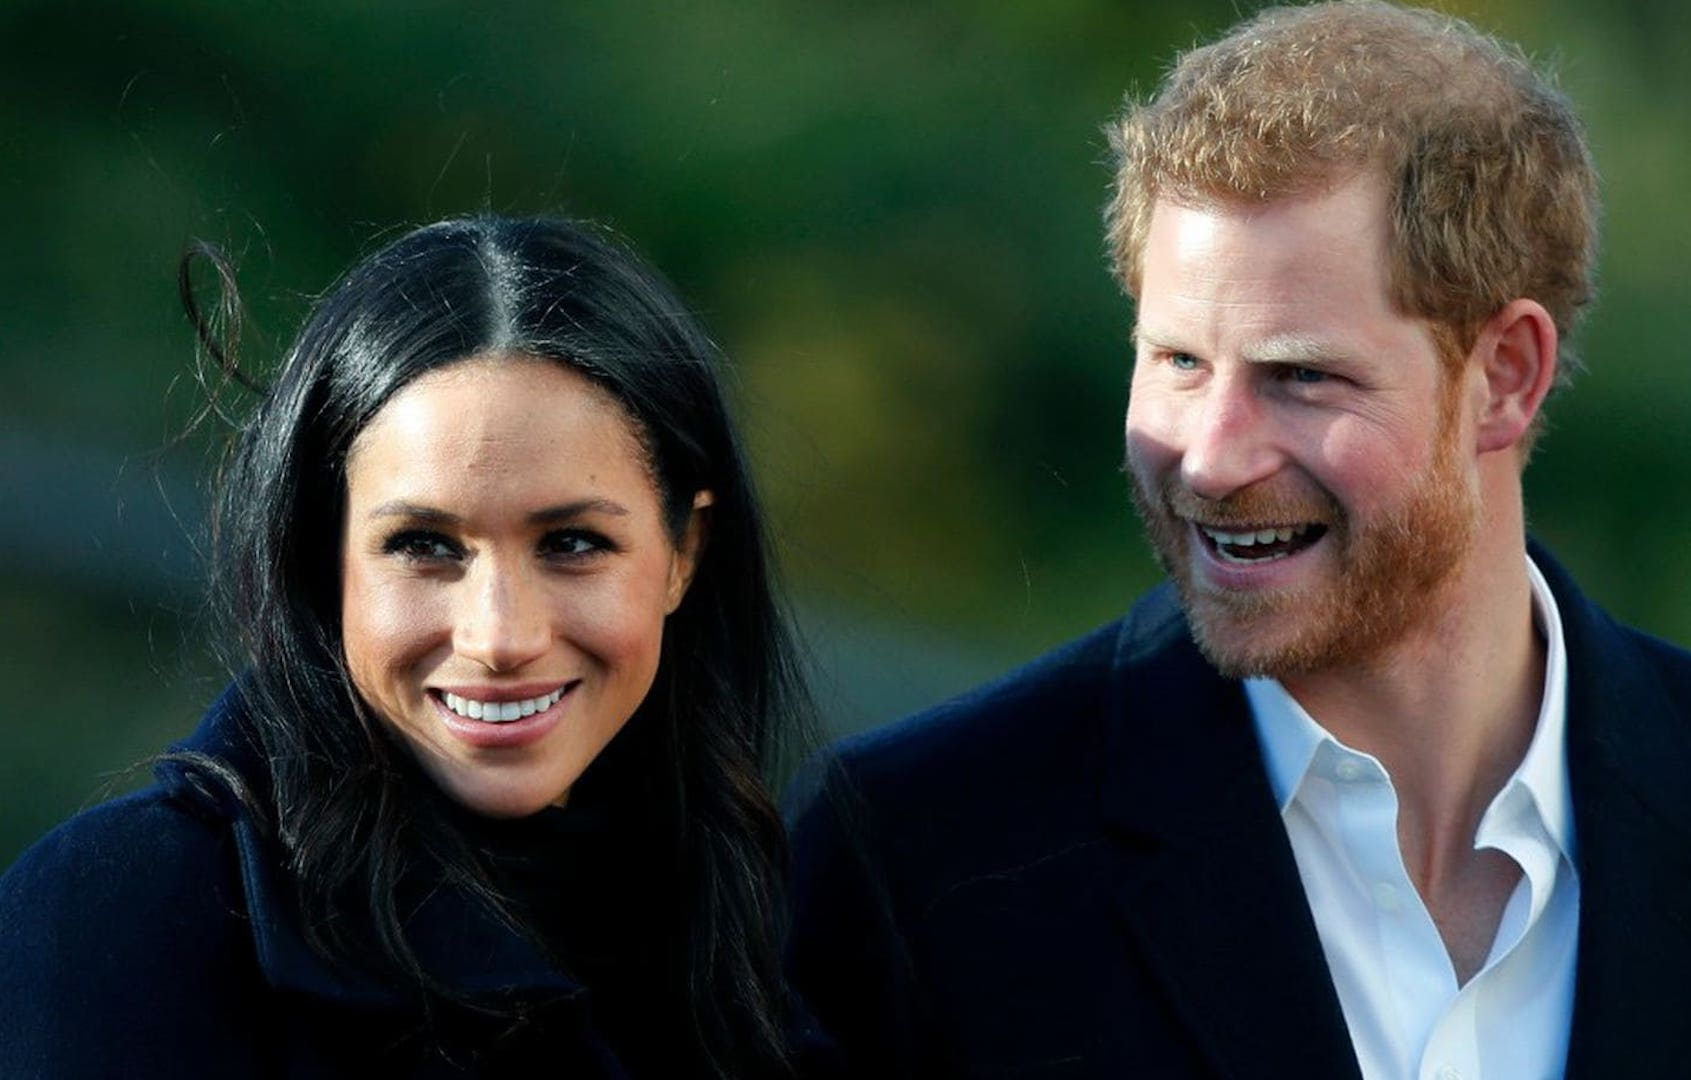 Every little thing to know about Meghan Markle and Prince Harry engagement photos